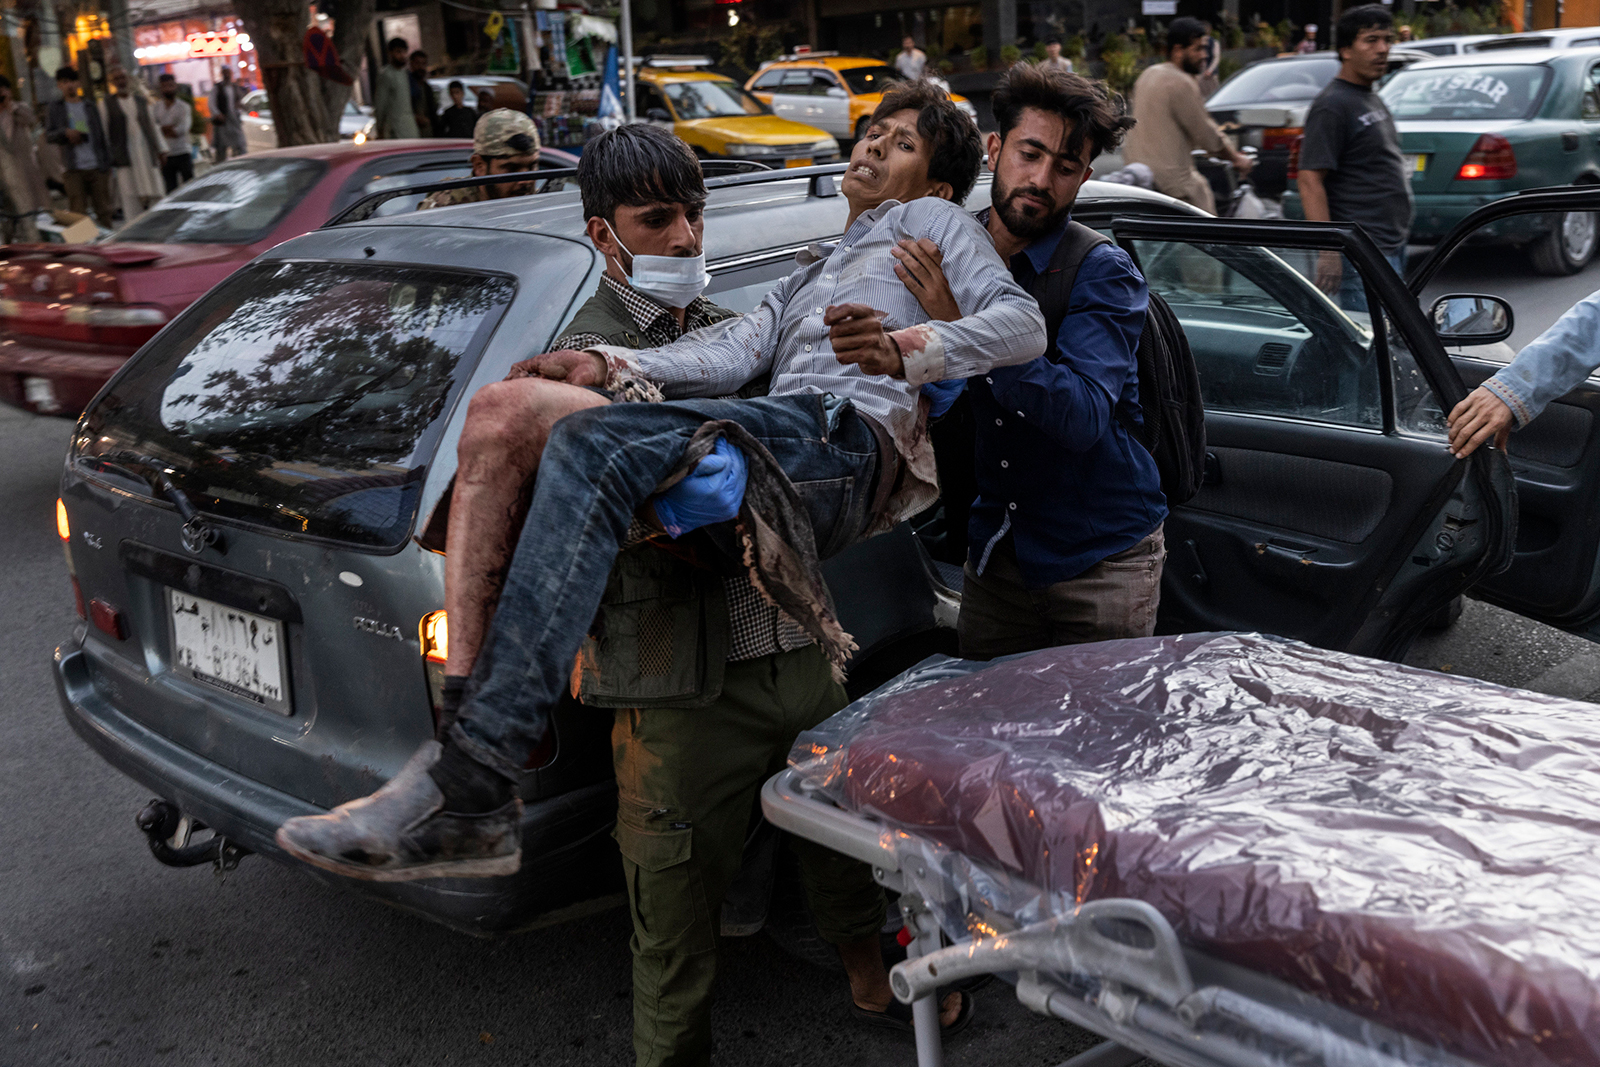 A person wounded in a bomb blast outside the Kabul airport in Afghanistan on Thursday, Aug. 26, arrives at a hospital in Kabul.